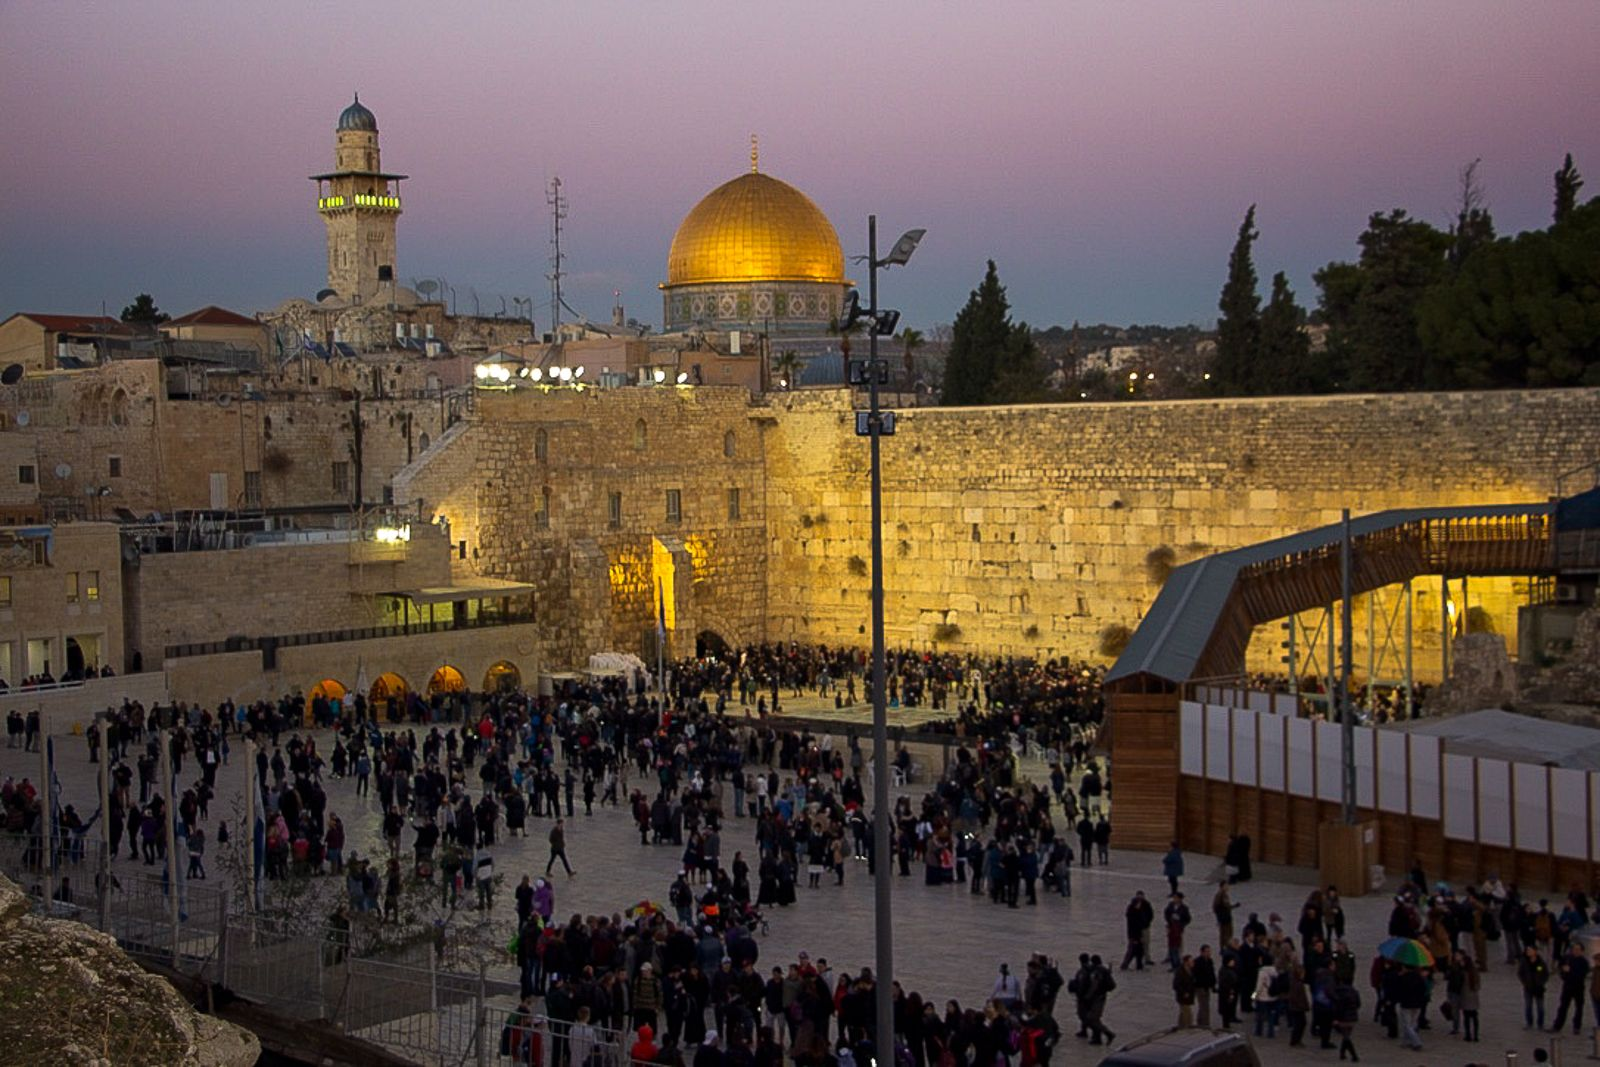 People arrive at the Western Wall for the menorah lighting ceremony on December26, 2016